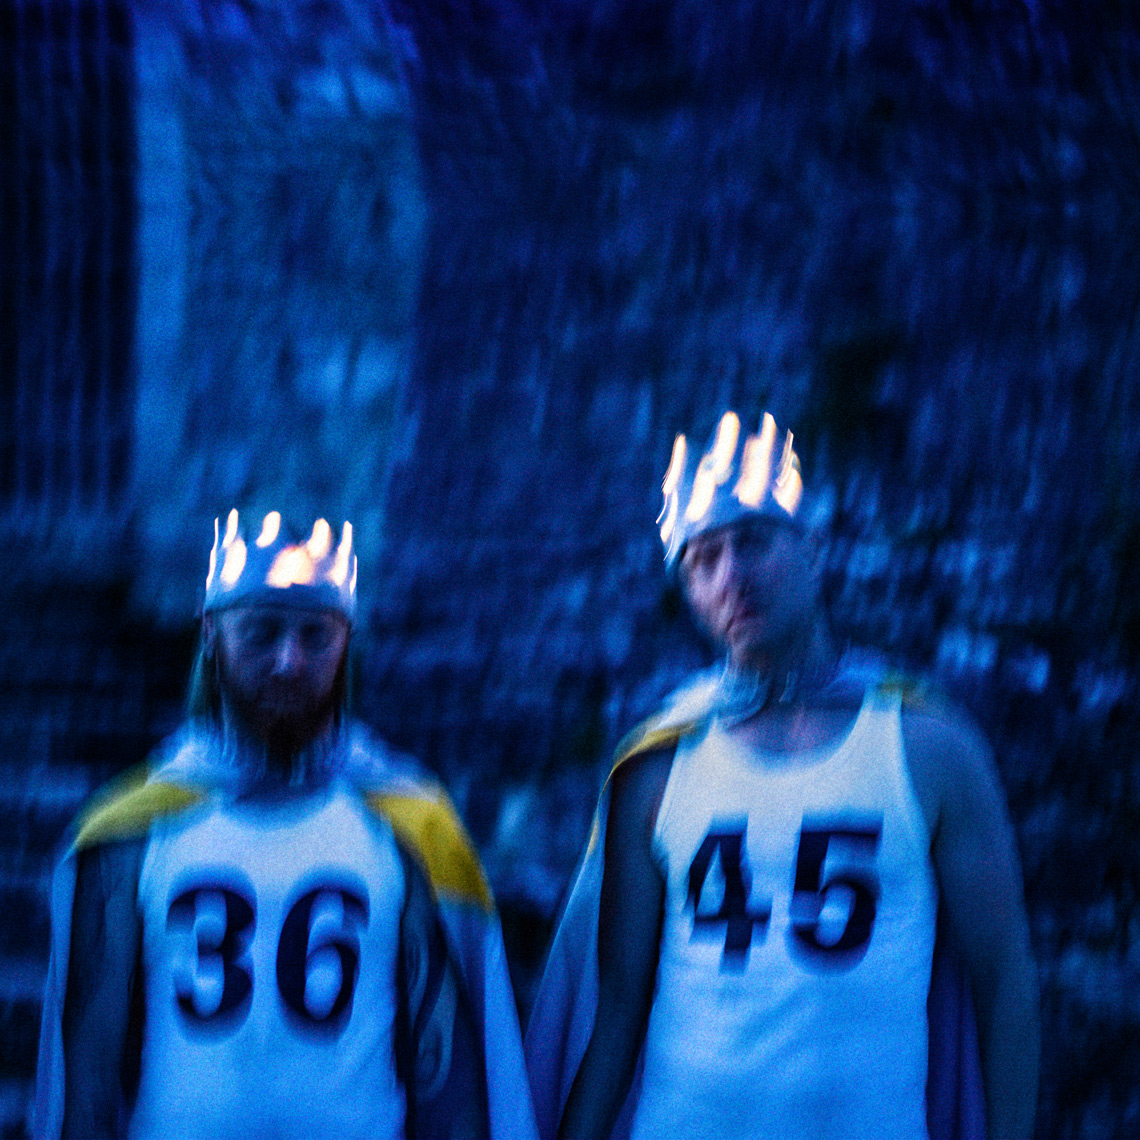 WOYH_KRTKRTK_sinikoski003Album Art Works and Promo Photos for WÖYH! // Photographer: Aki-Pekka Sinikoski